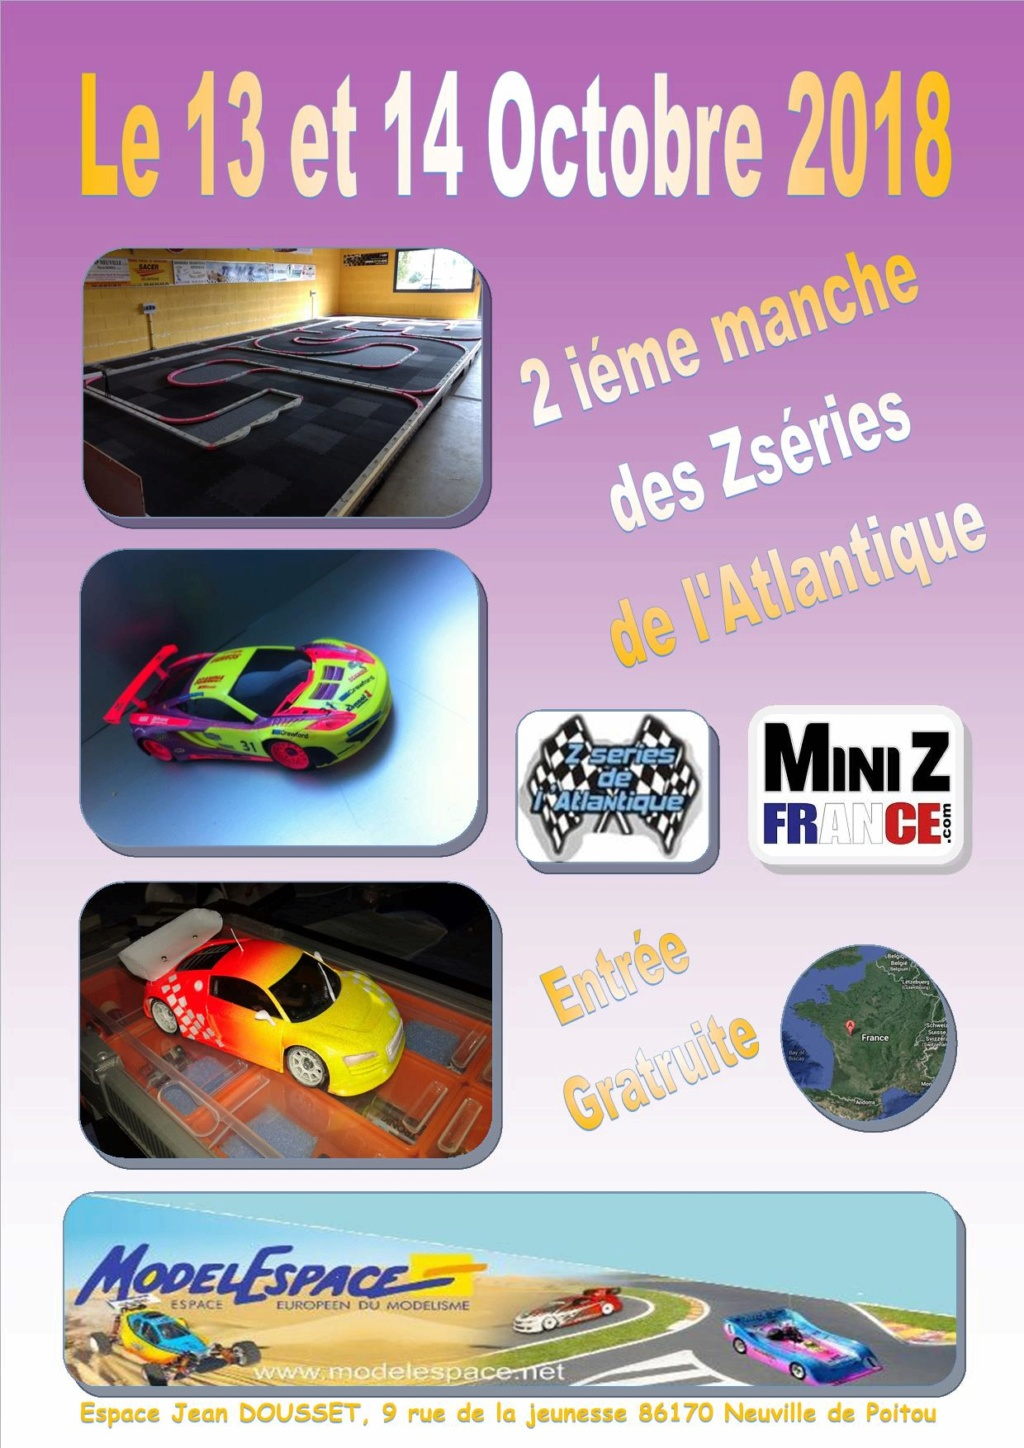 (86) 13-14 octobre 2018 seconde manche des Zseries de l'atlantique - modelespace 13-14_10